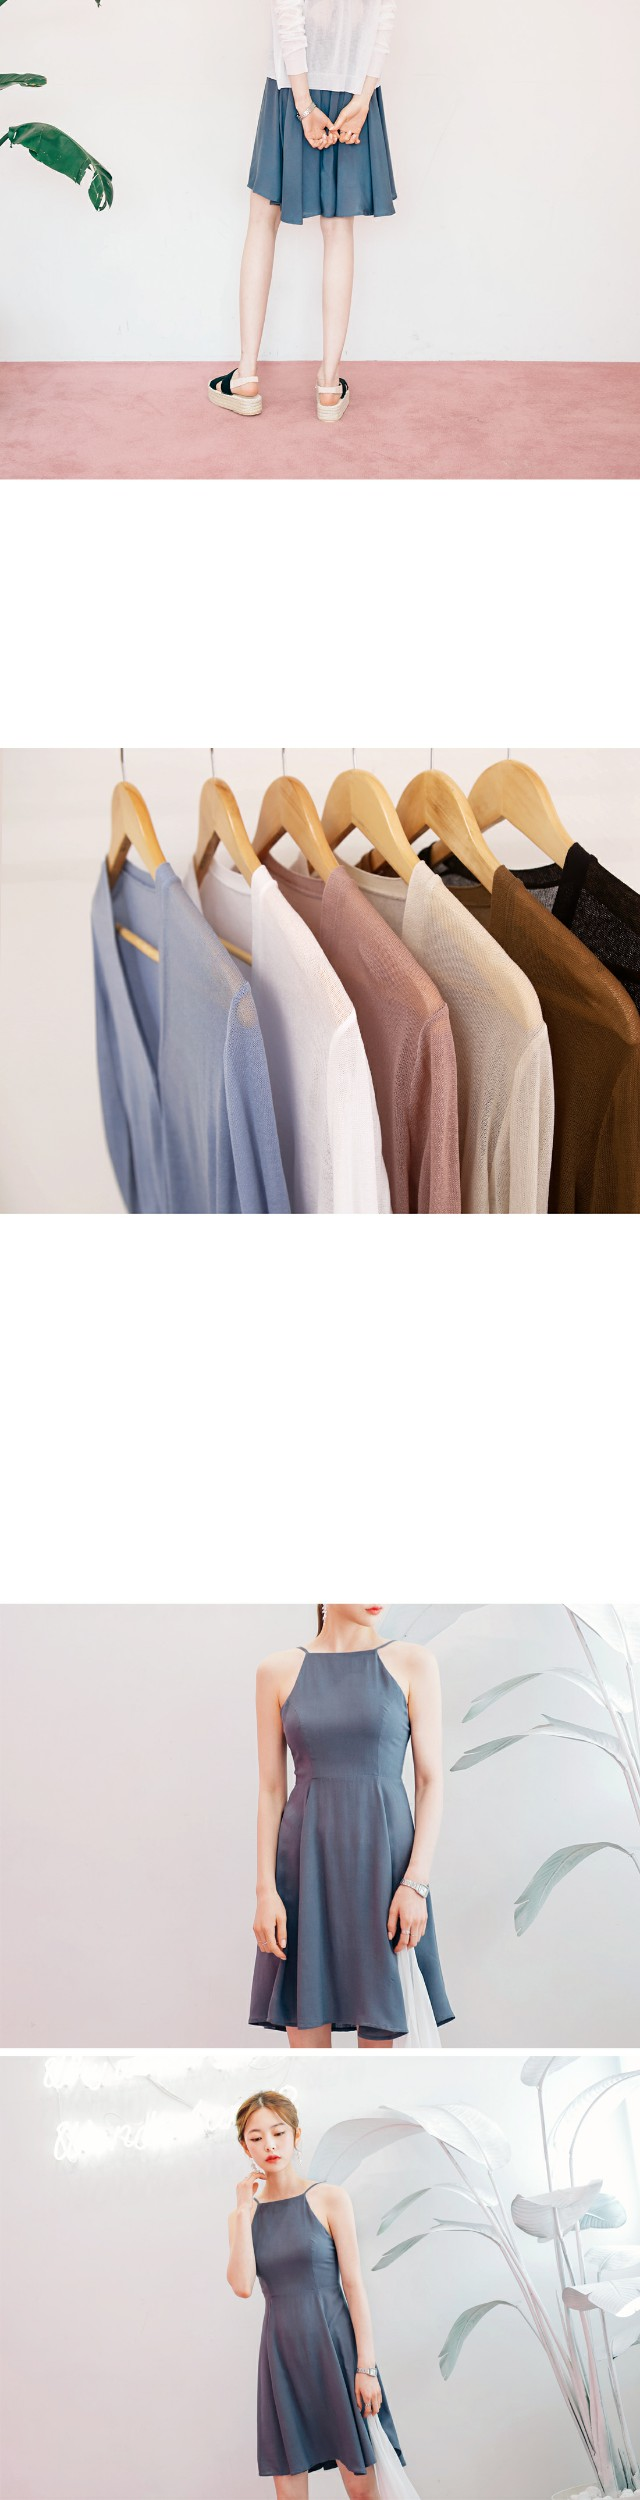 6 COLOR BASIC V-NECK CARDIGAN